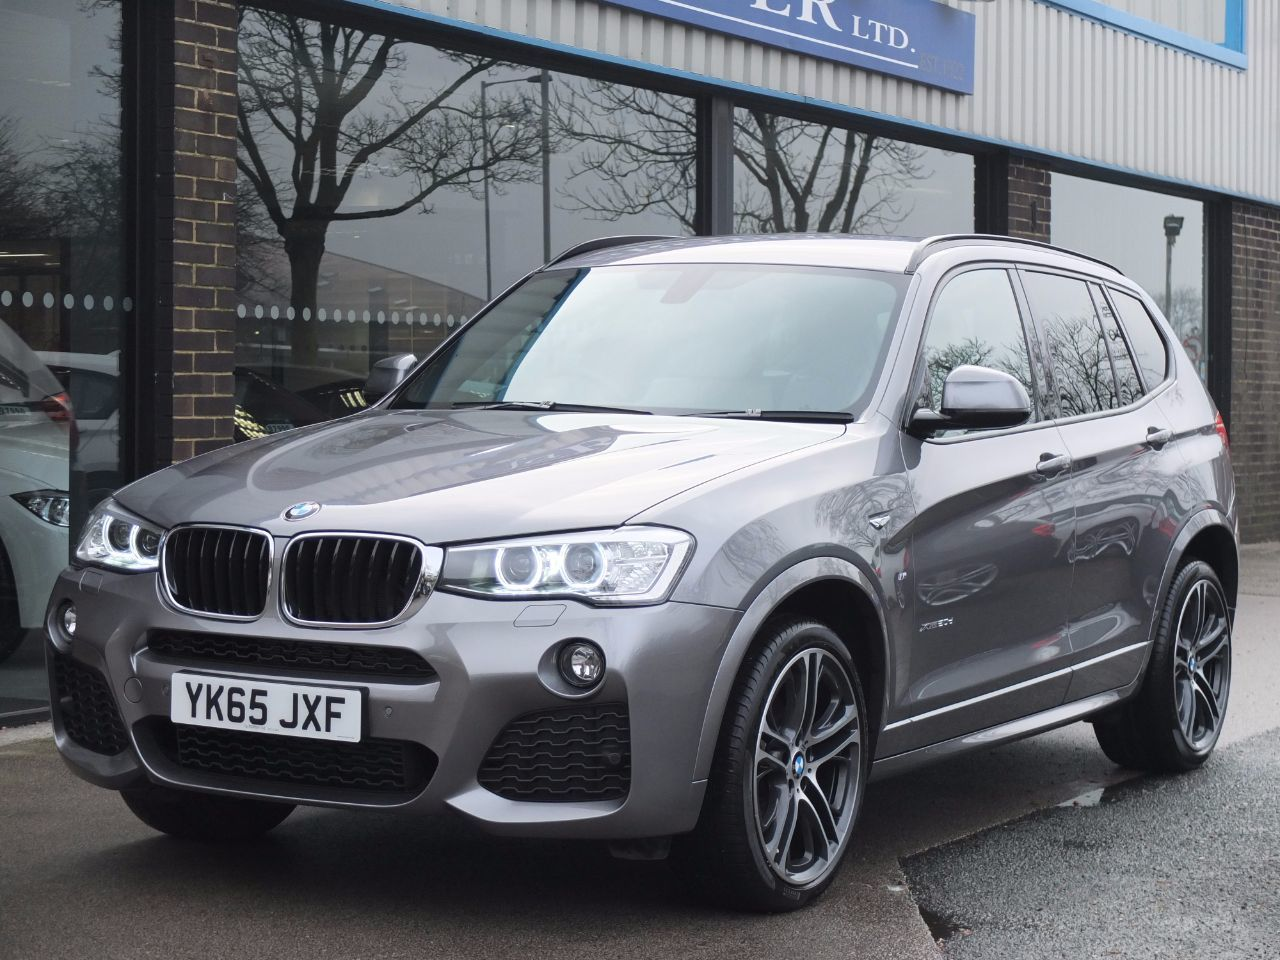 BMW X3 2.0 xDrive20d M Sport Auto (M Sport Plus and Pro Media) Estate Diesel Space Grey MetallicBMW X3 2.0 xDrive20d M Sport Auto (M Sport Plus and Pro Media) Estate Diesel Space Grey Metallic at fa Roper Ltd Bradford